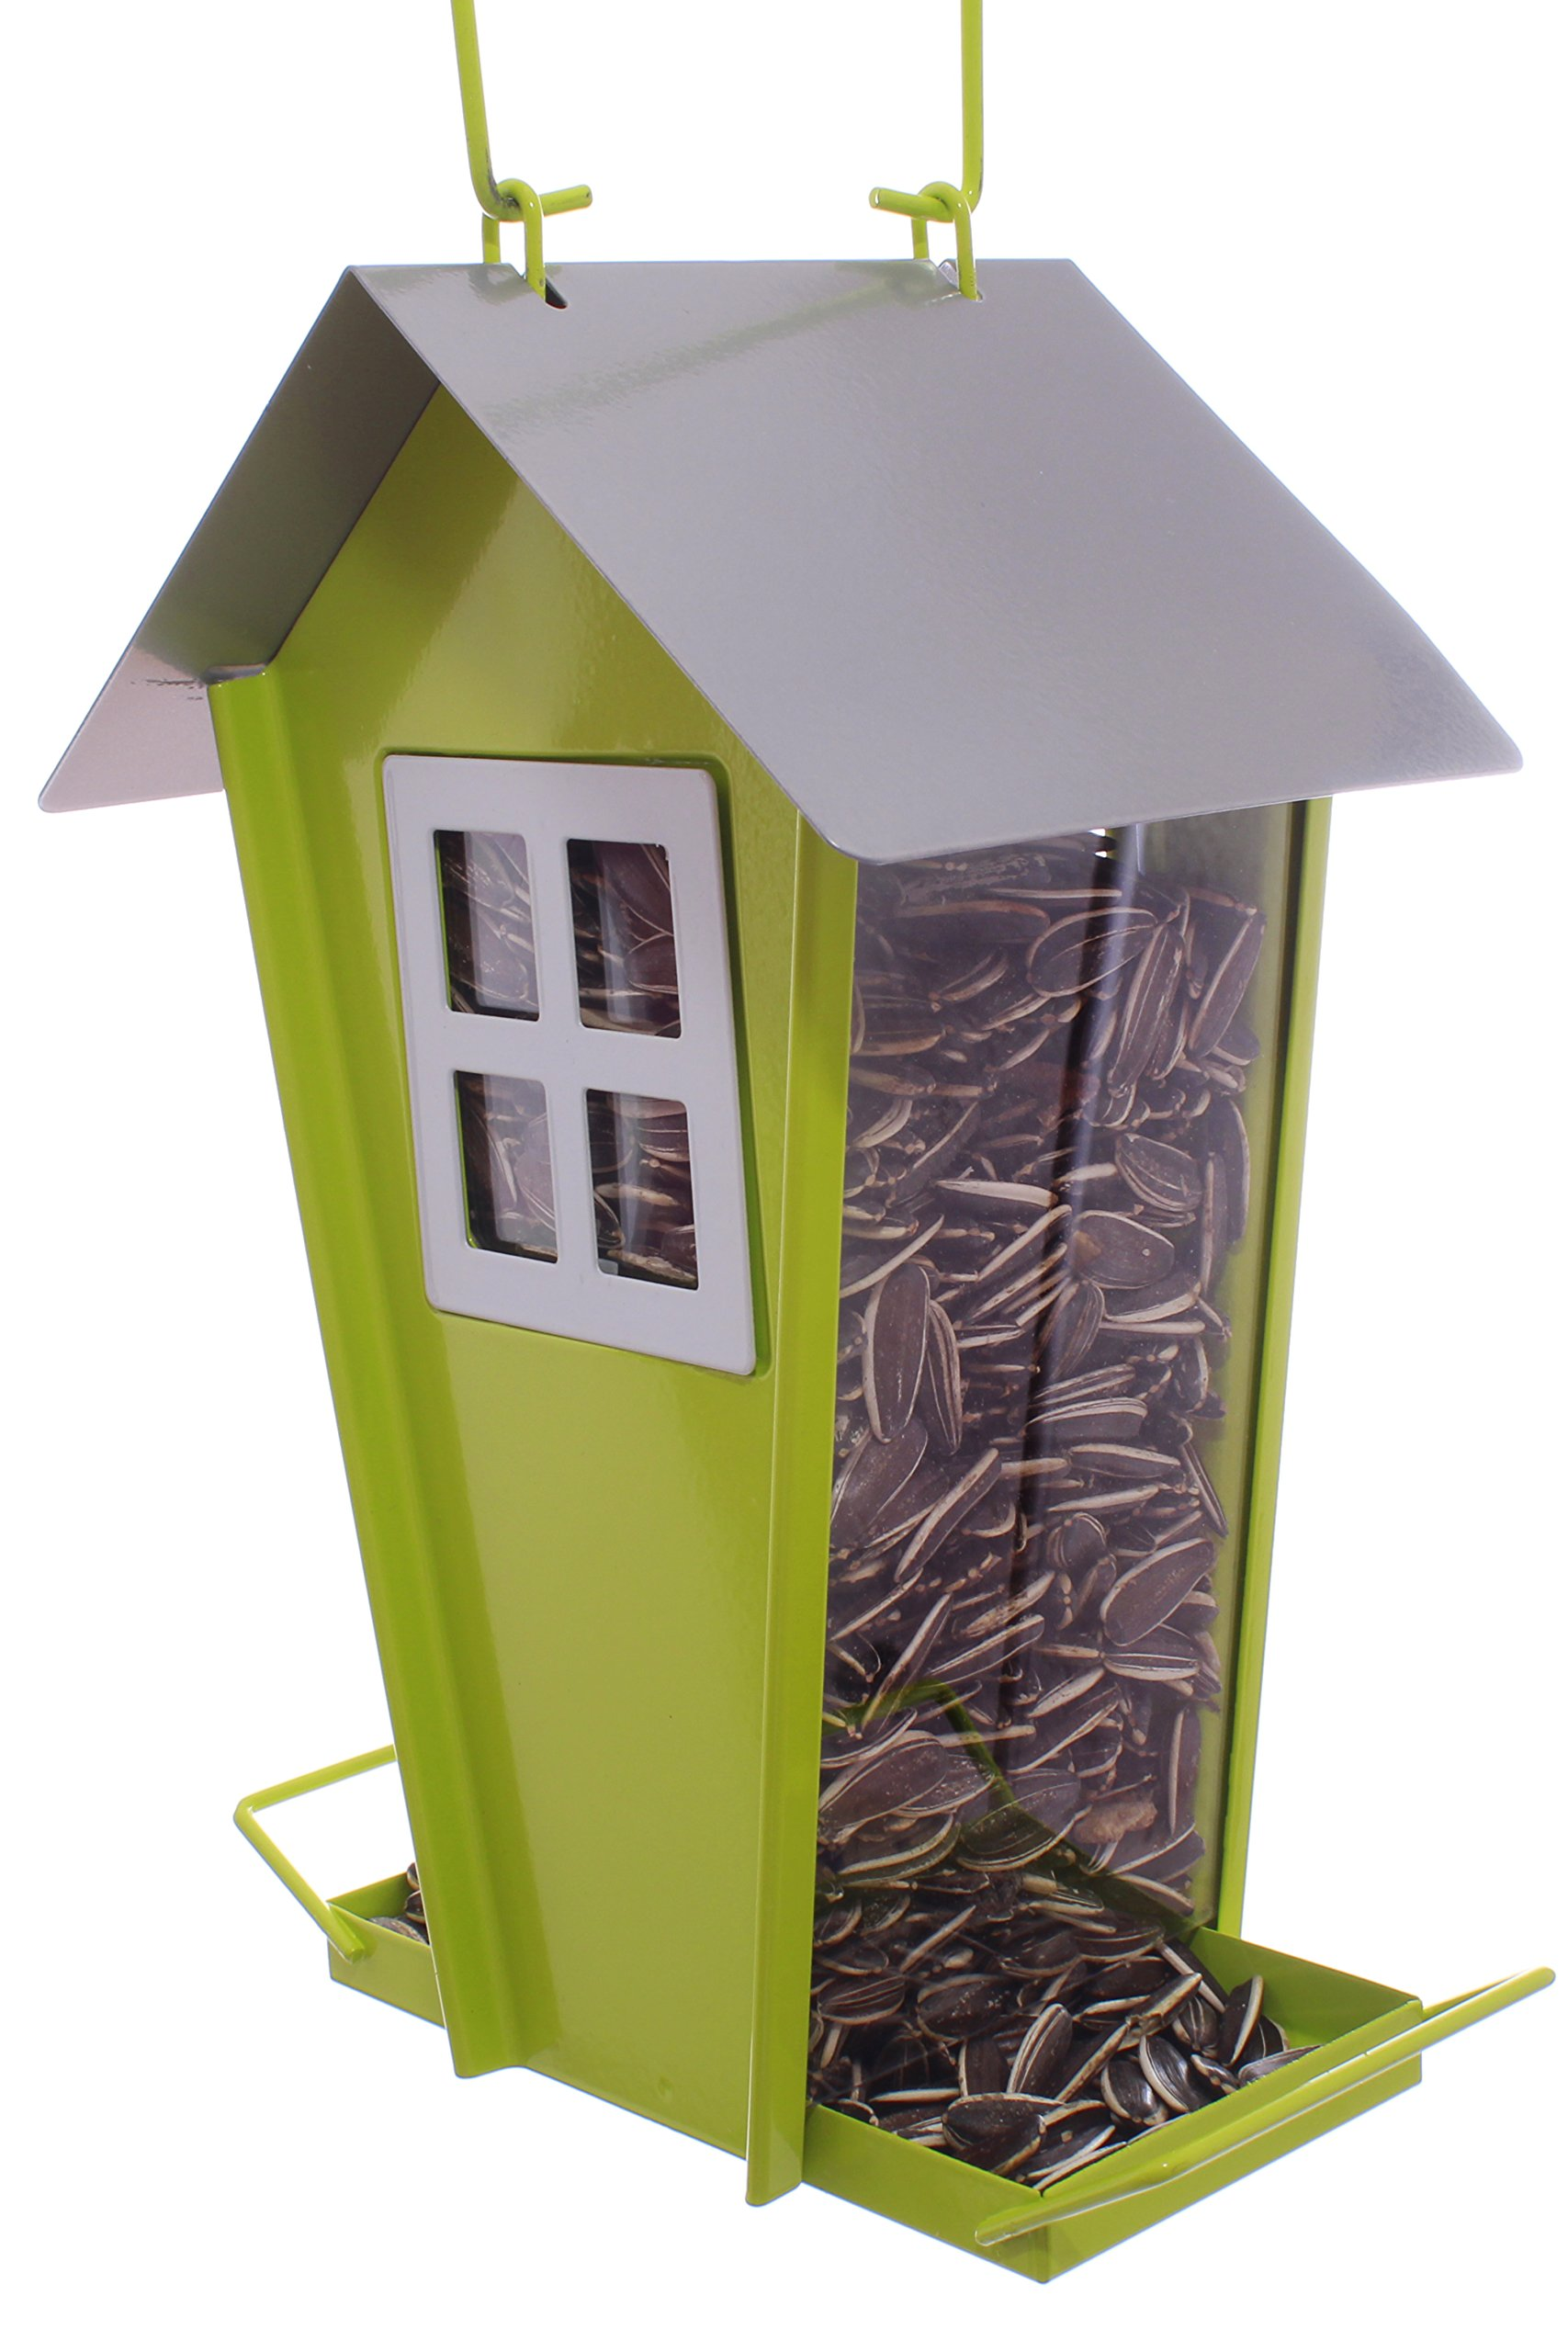 Barn Shaped Wild Bird Feeder Attract More Birds Perfect for Garden Decoration, Great Bird Feeders for Small & Medium Birds, Easy to Clean and Fill Bird Feeder Hanger Included Great Gift & Fun Idea!